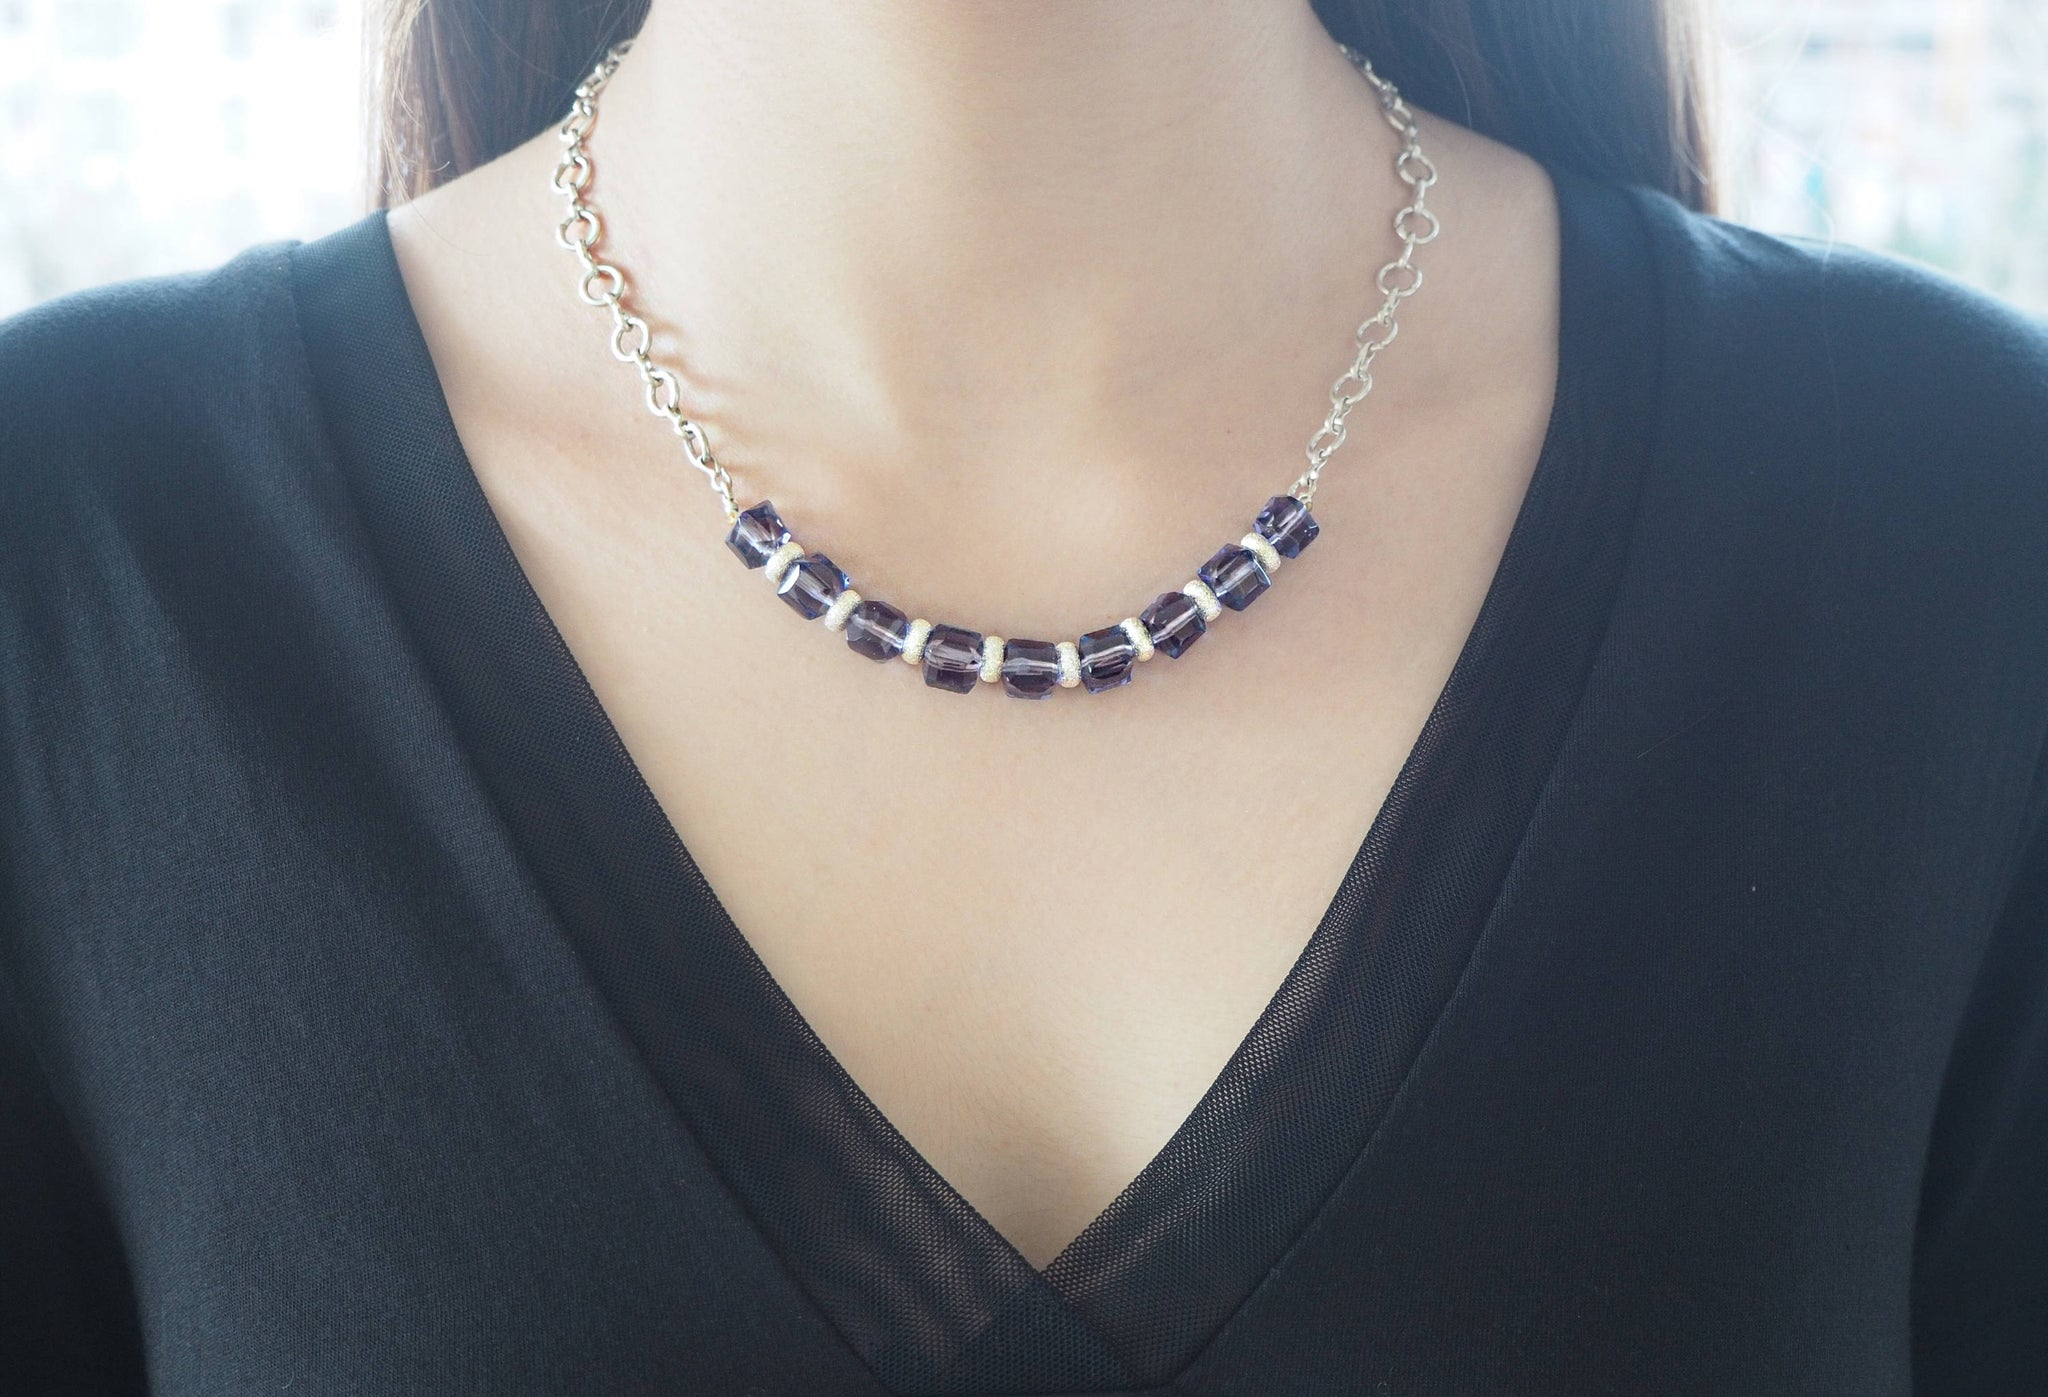 Amethyst - Silver chain necklace with center of amethyst quartz cubes